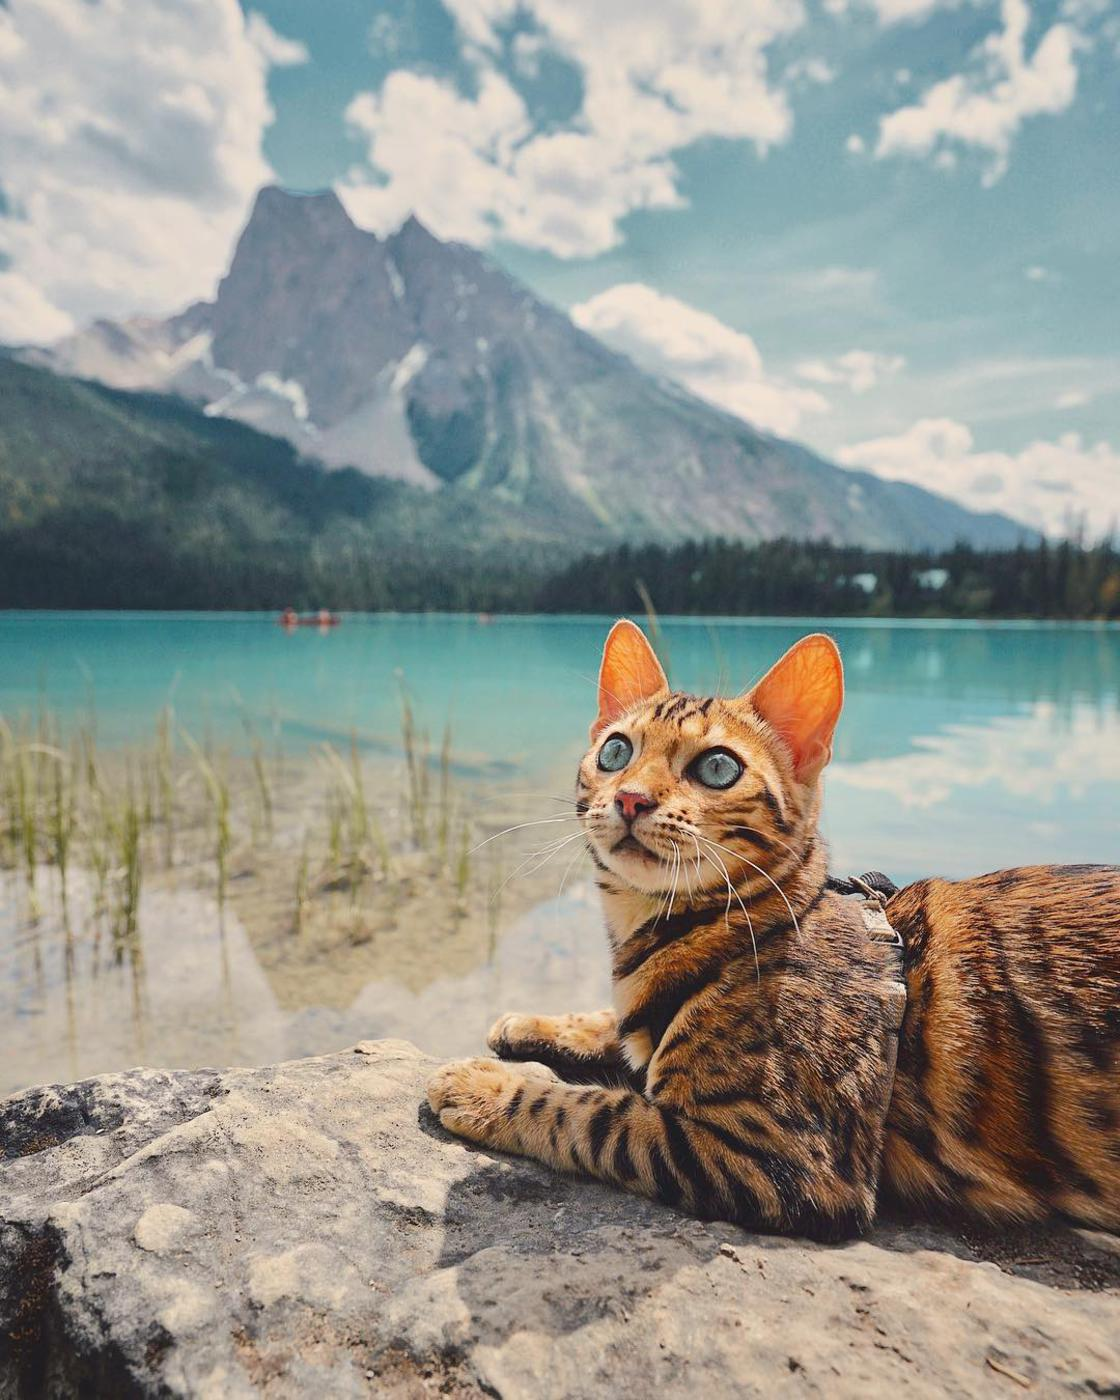 Suki The Cat – The adventures of a beautiful cat across wild Canada